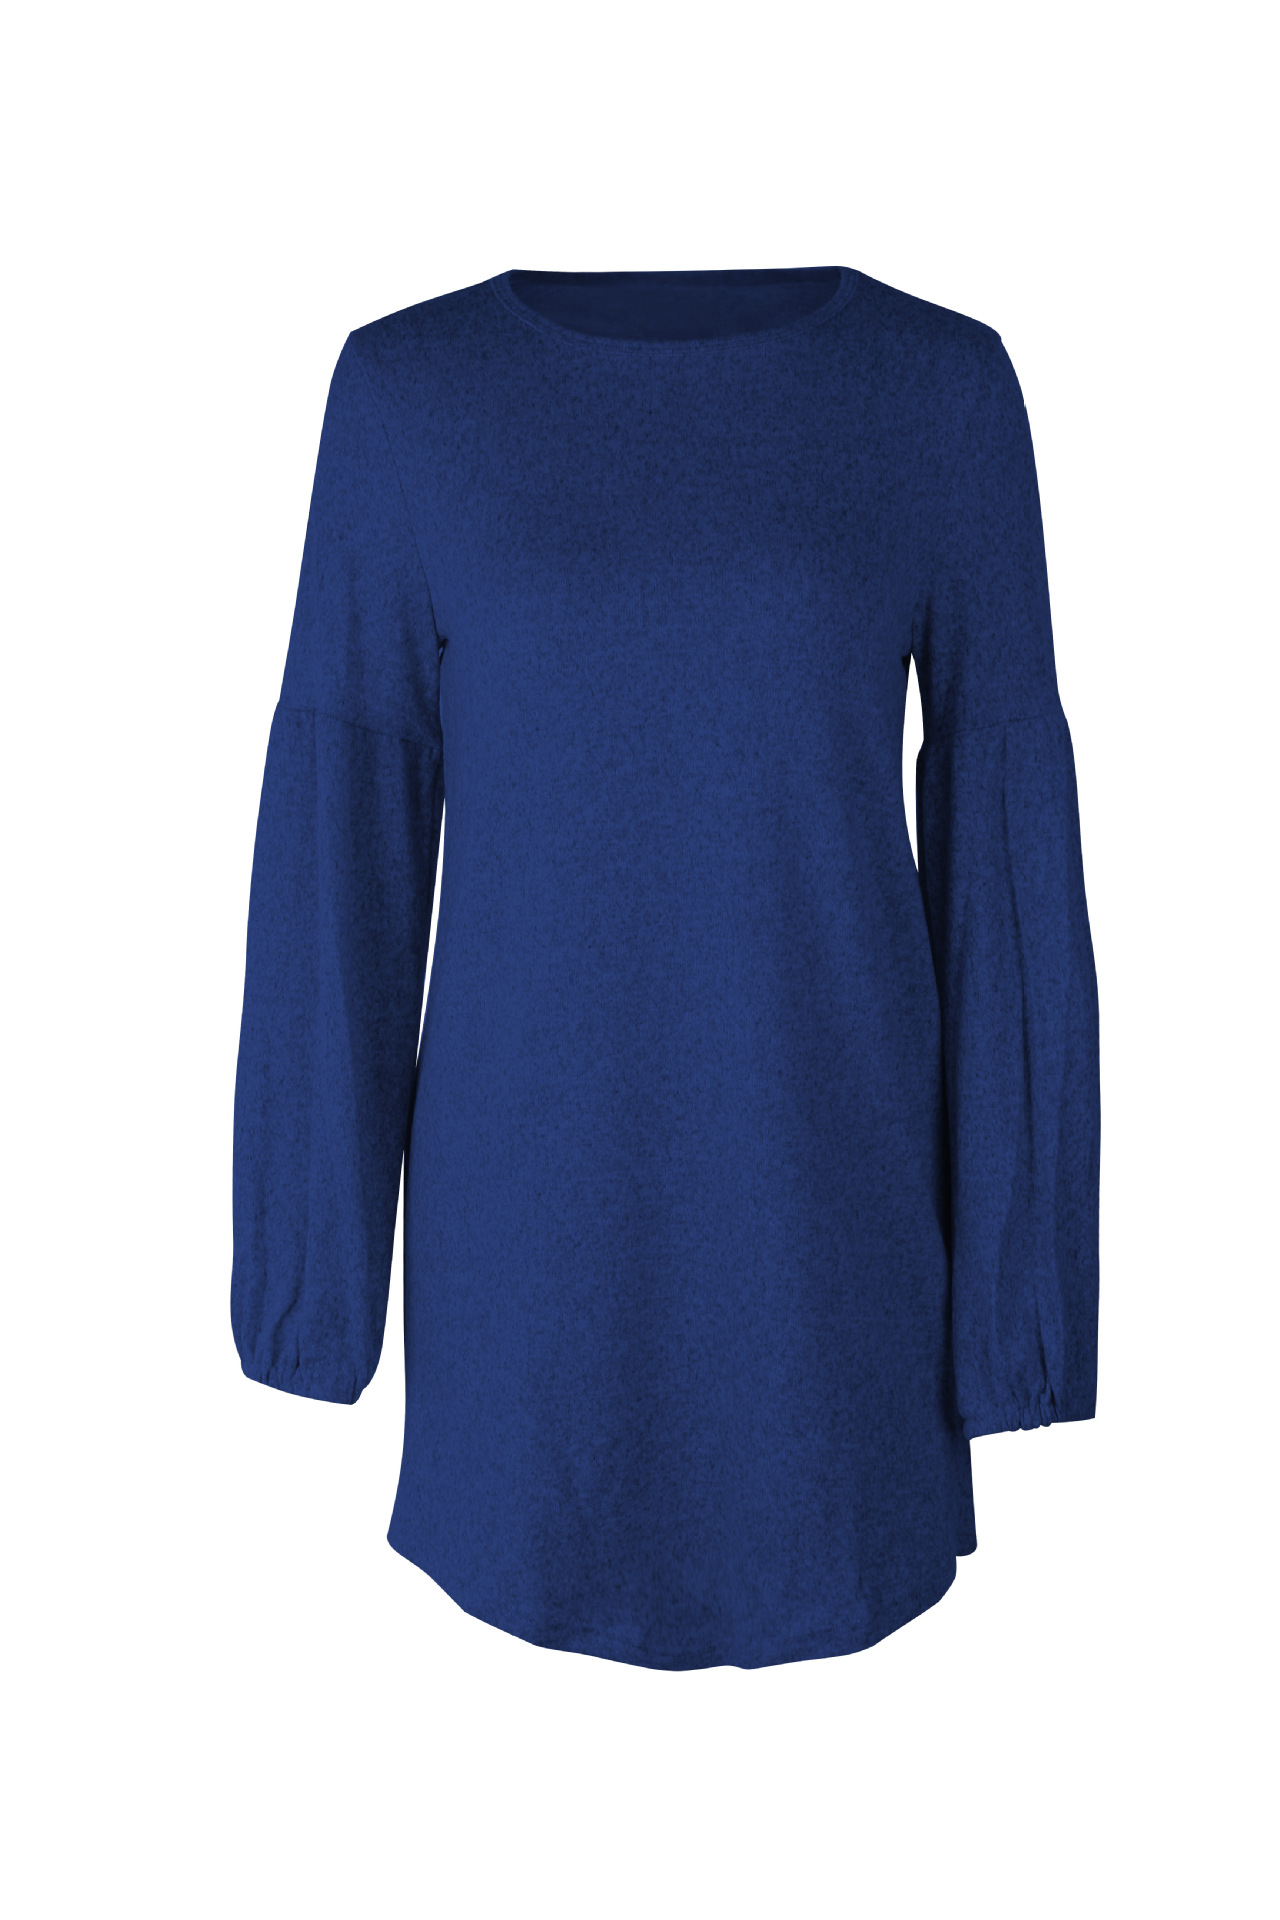 Women Knitted Dress Autumn Winter Long Lantern Sleeve Causal Loose Short A line Sweater Dress royal blue